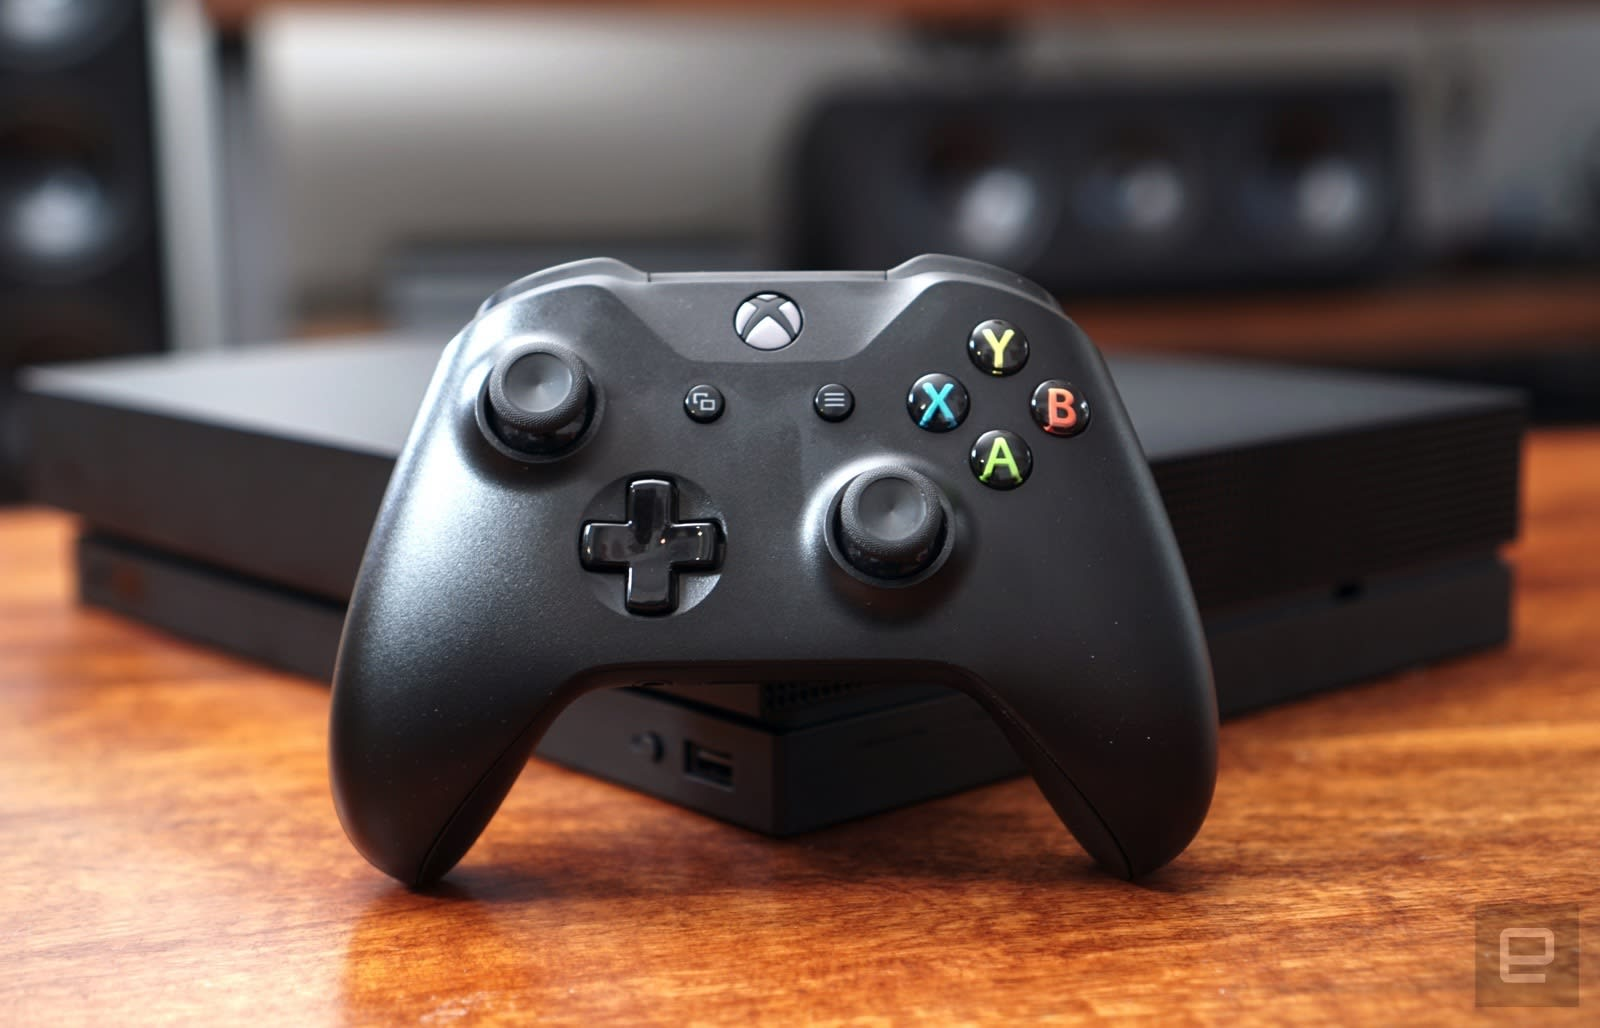 Xbox Wireless Controller in front of an Xbox One X